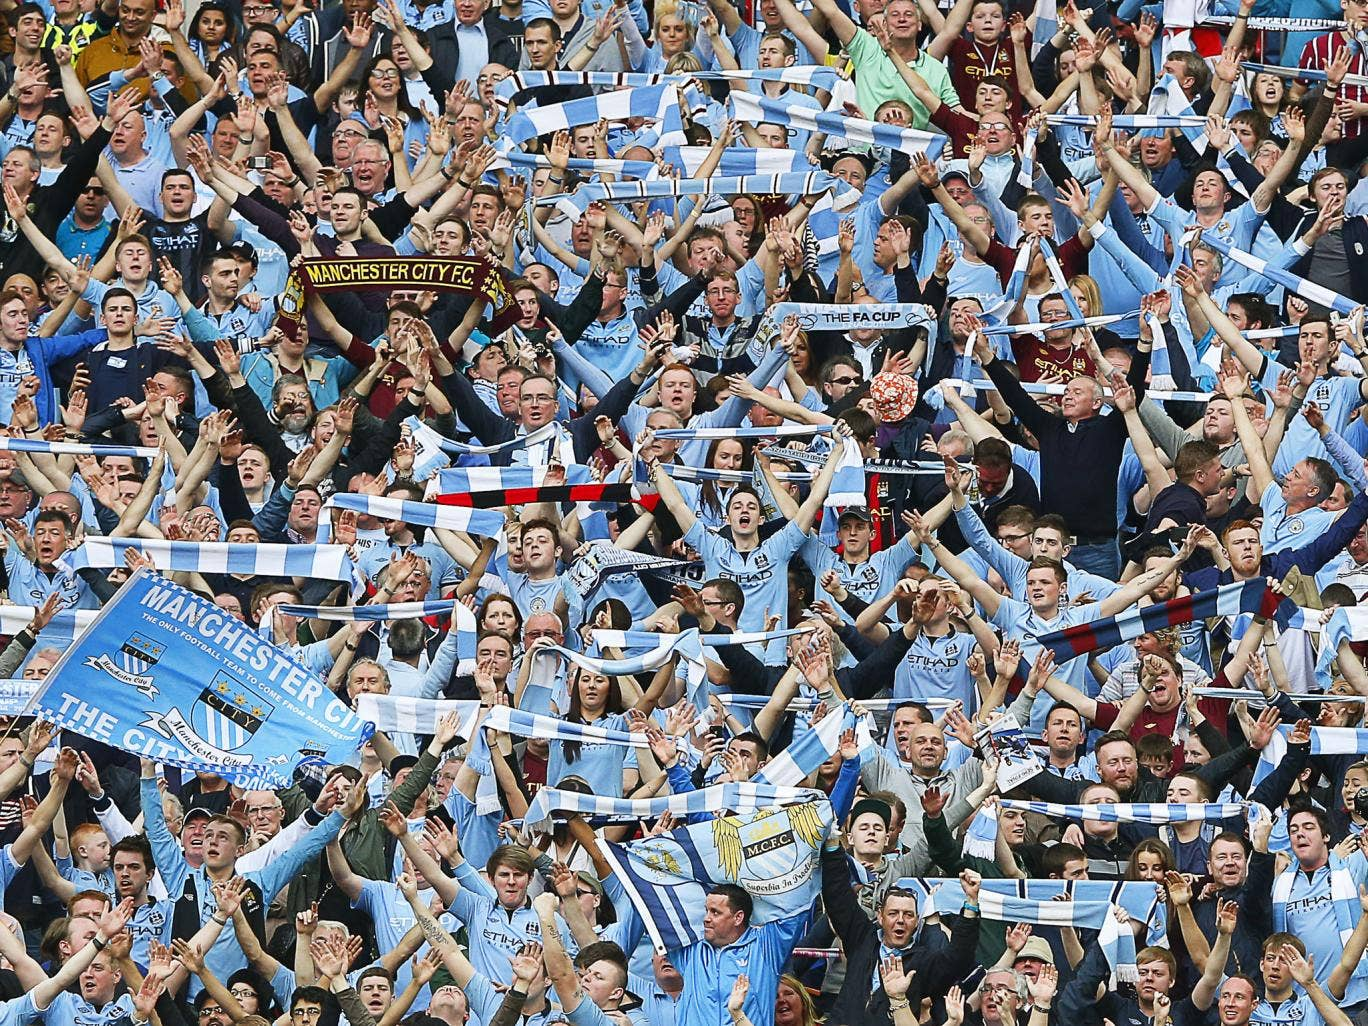 Manchester City fans have started a petition against Viagogo